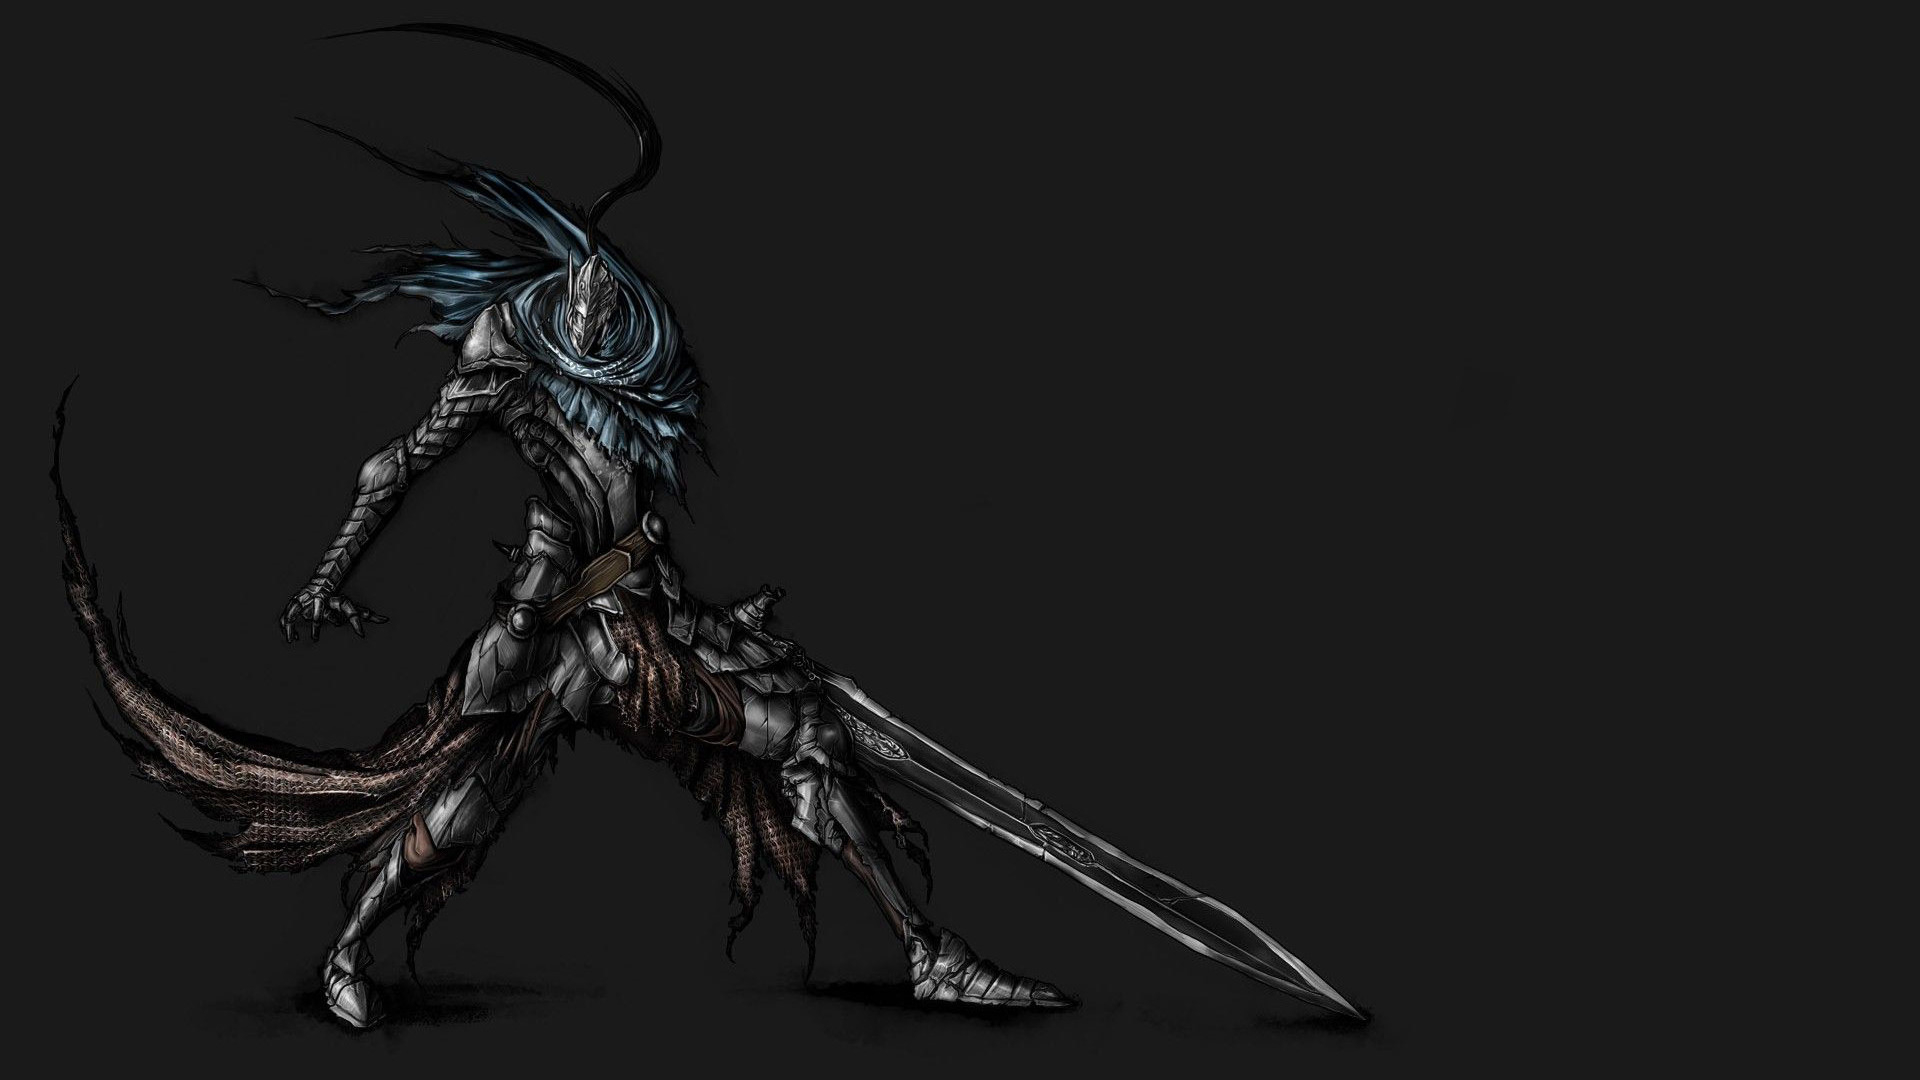 Free Download Knight Artorias Sword Dark Souls Wallpaper